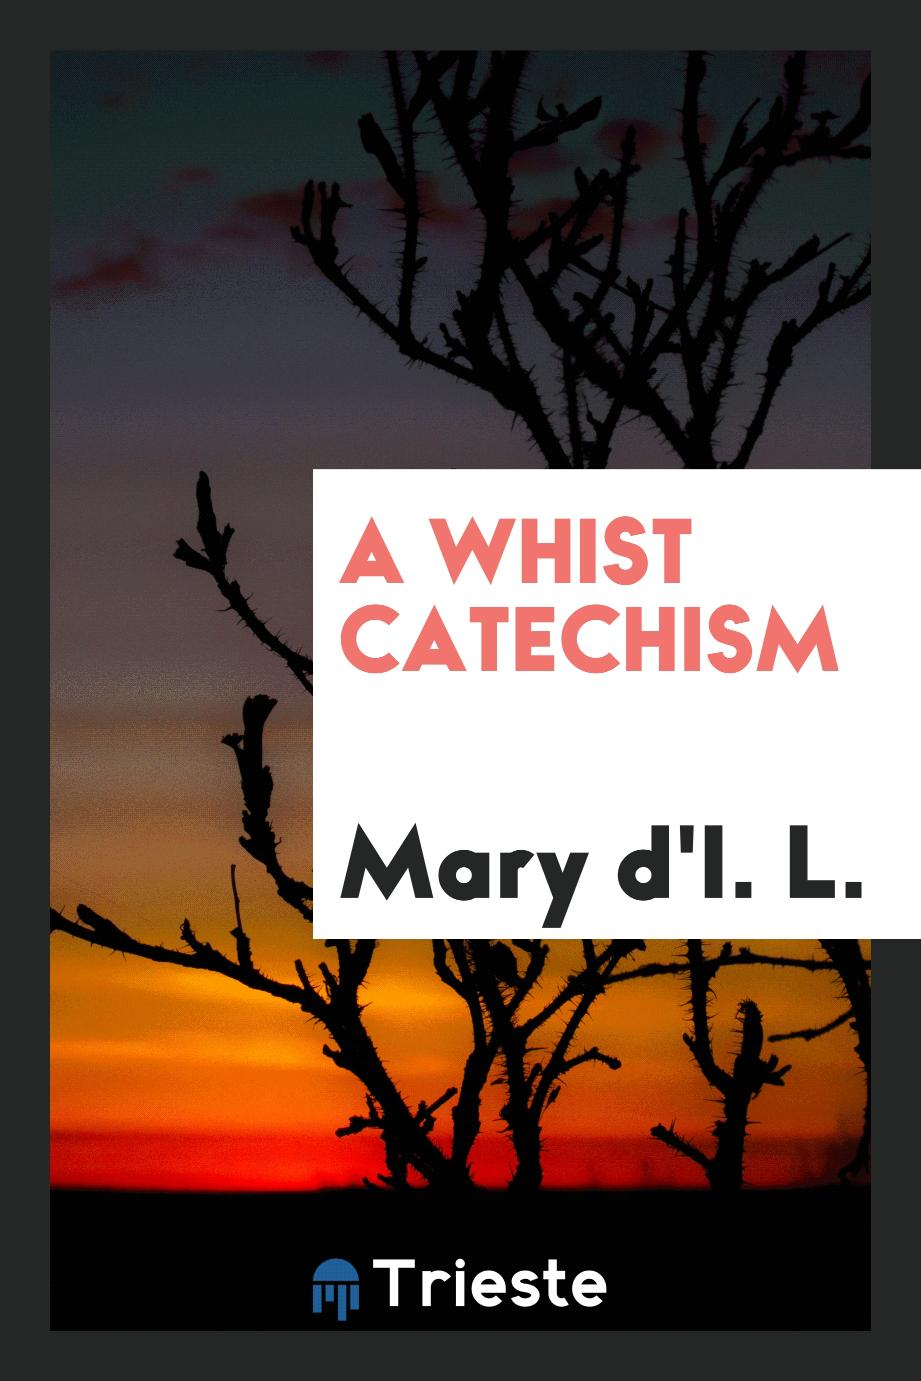 A Whist Catechism